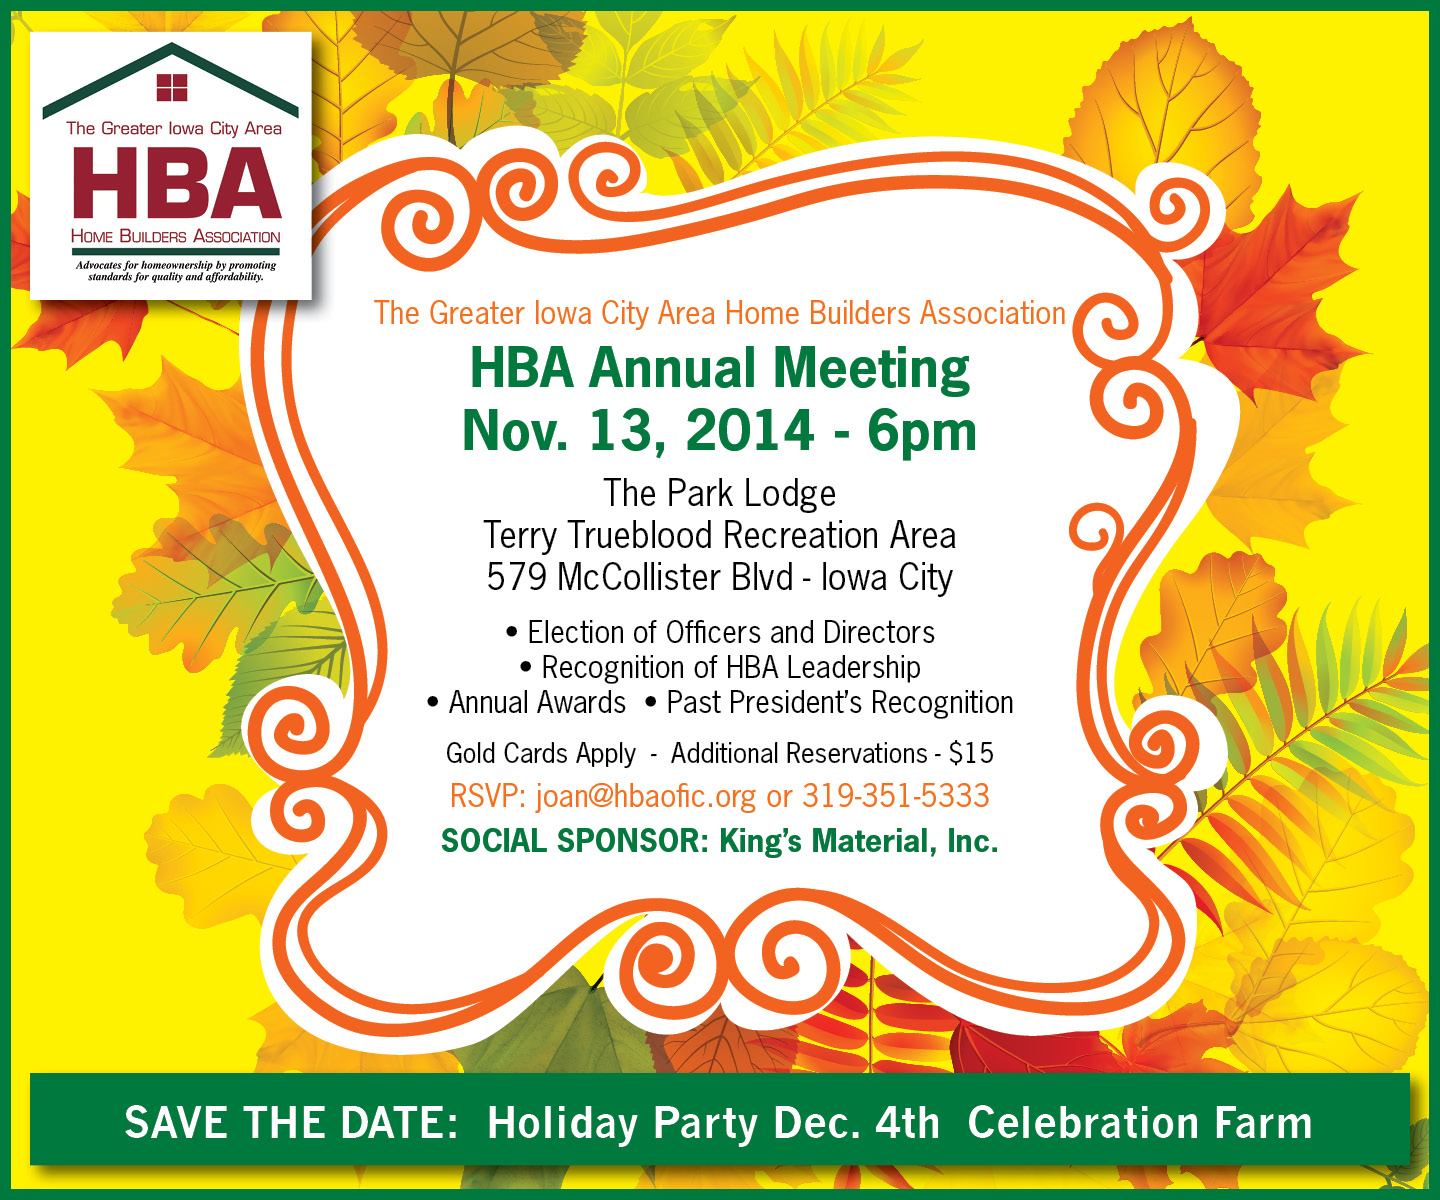 Annual Meeting Recognition Of HBA Leadership